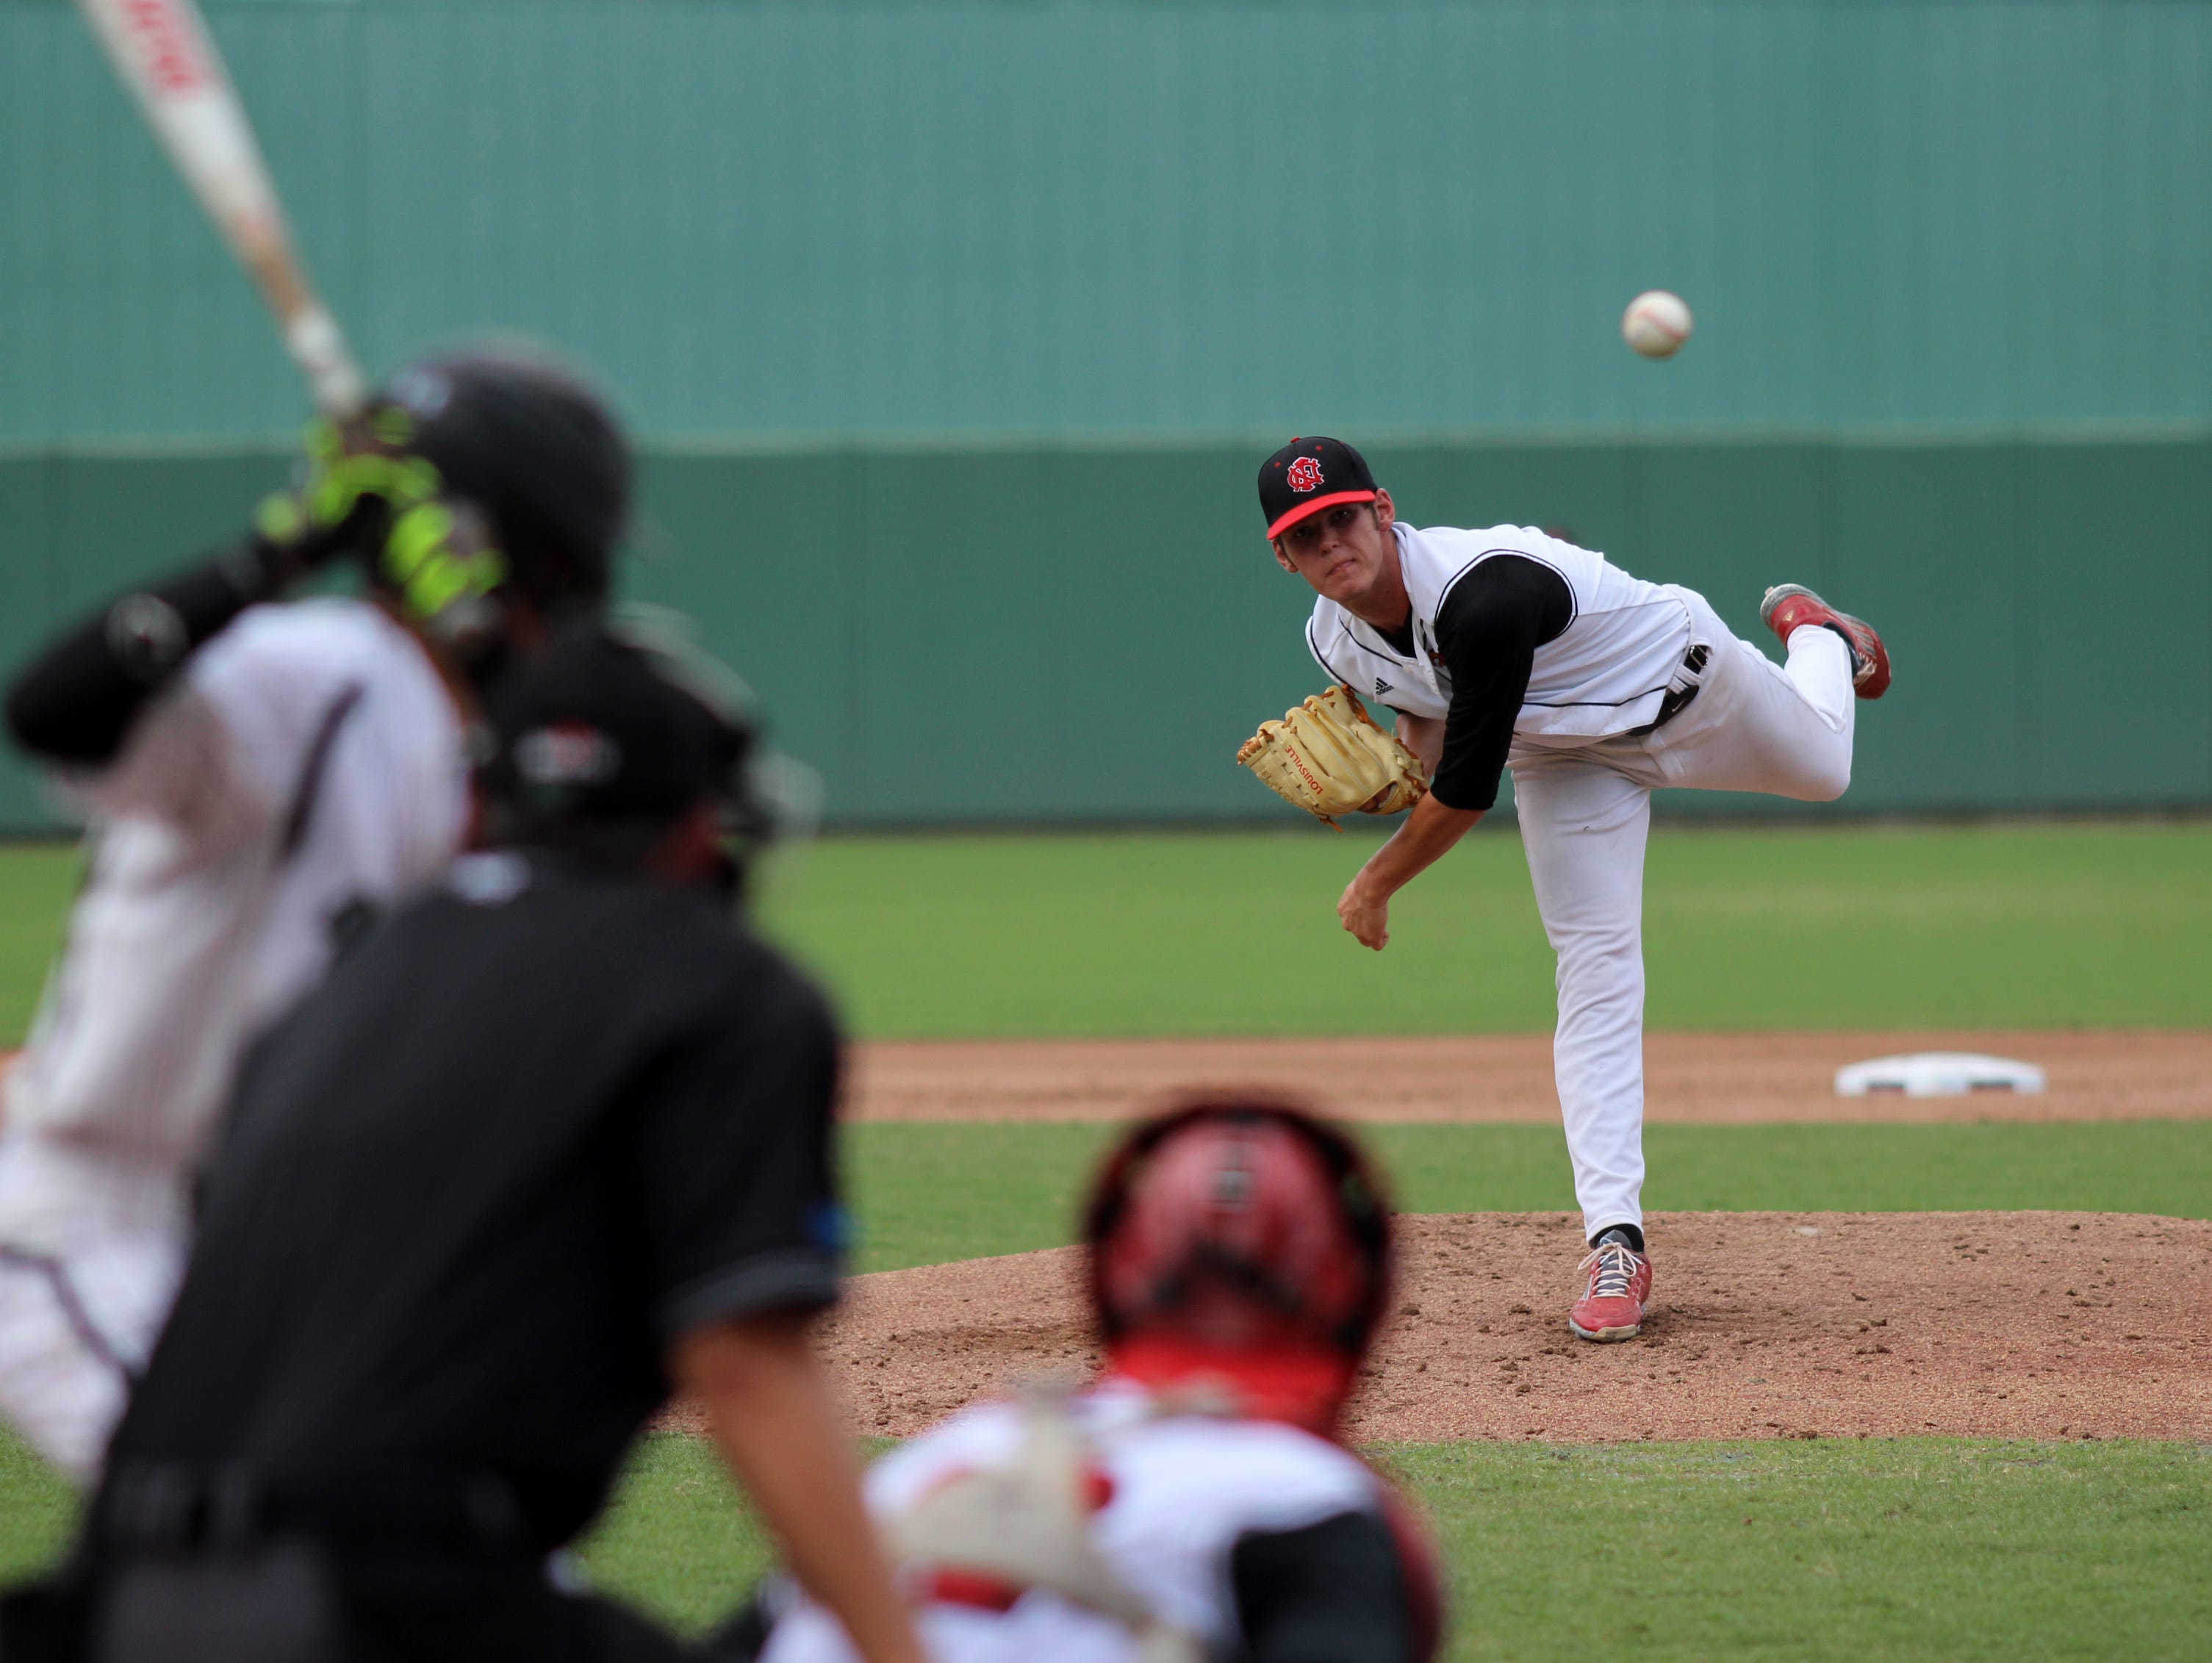 Cole Ragans pitches during Tuesday's FHSAA Class 3A State Championship game at jetBlue Park in Fort Myers, Florida.